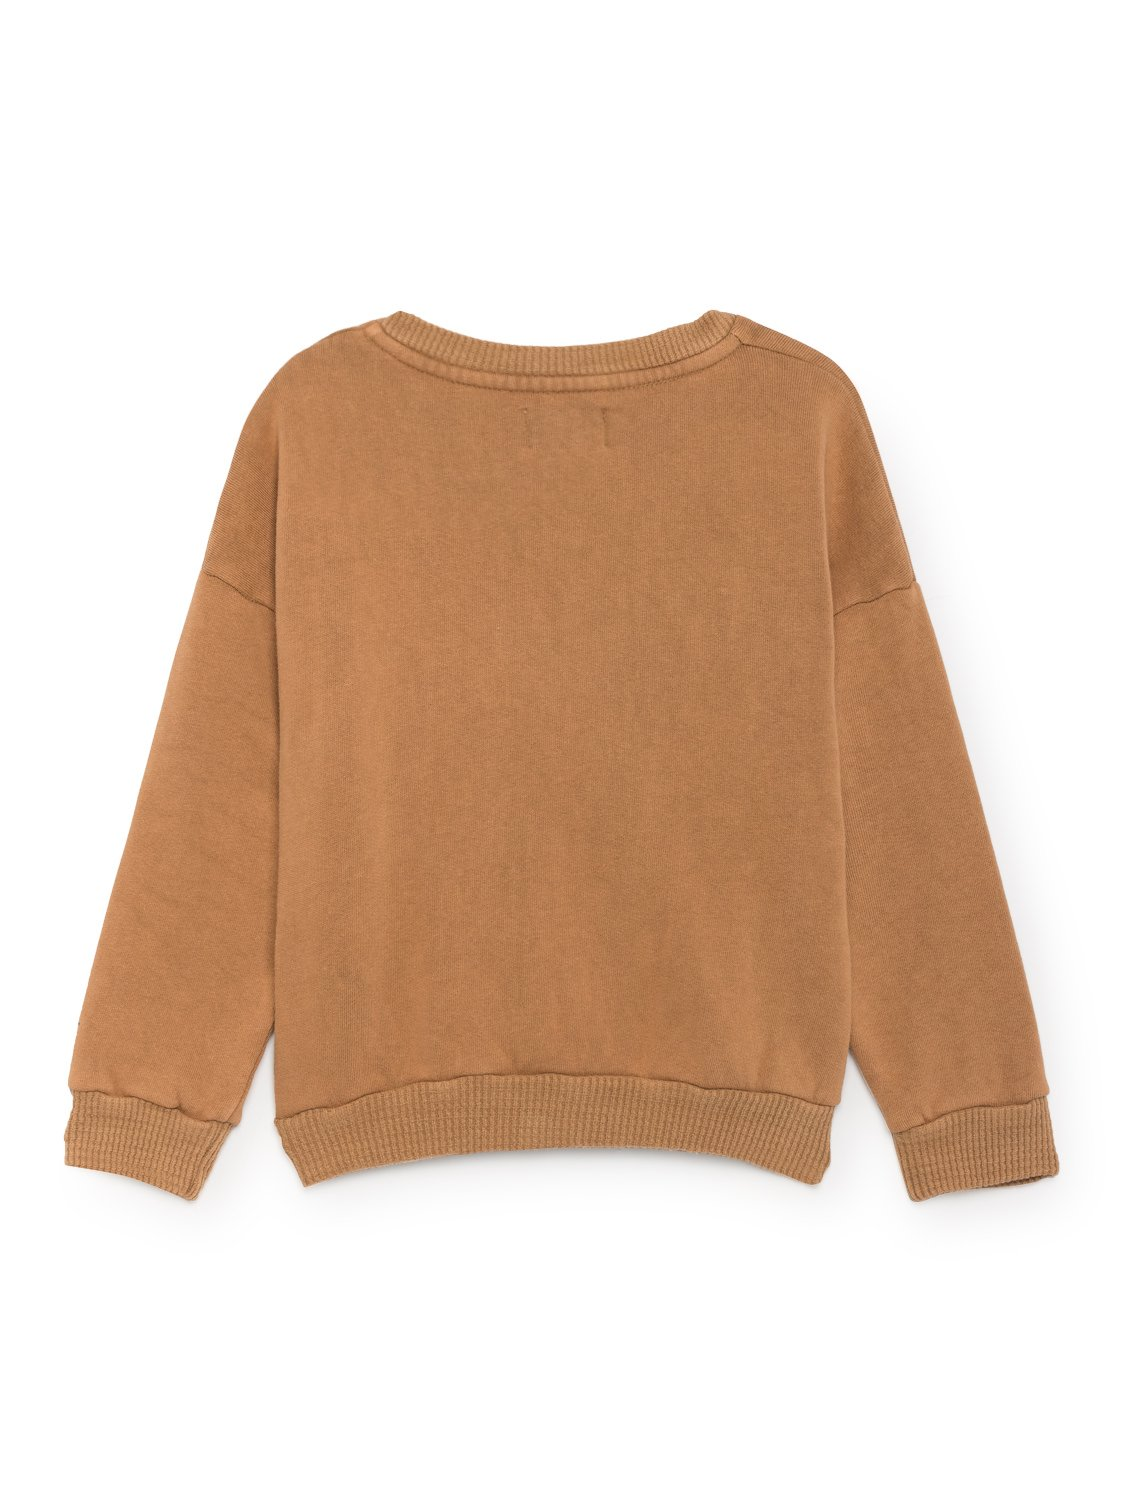 Clearly Confused Round Neck Sweatshirt